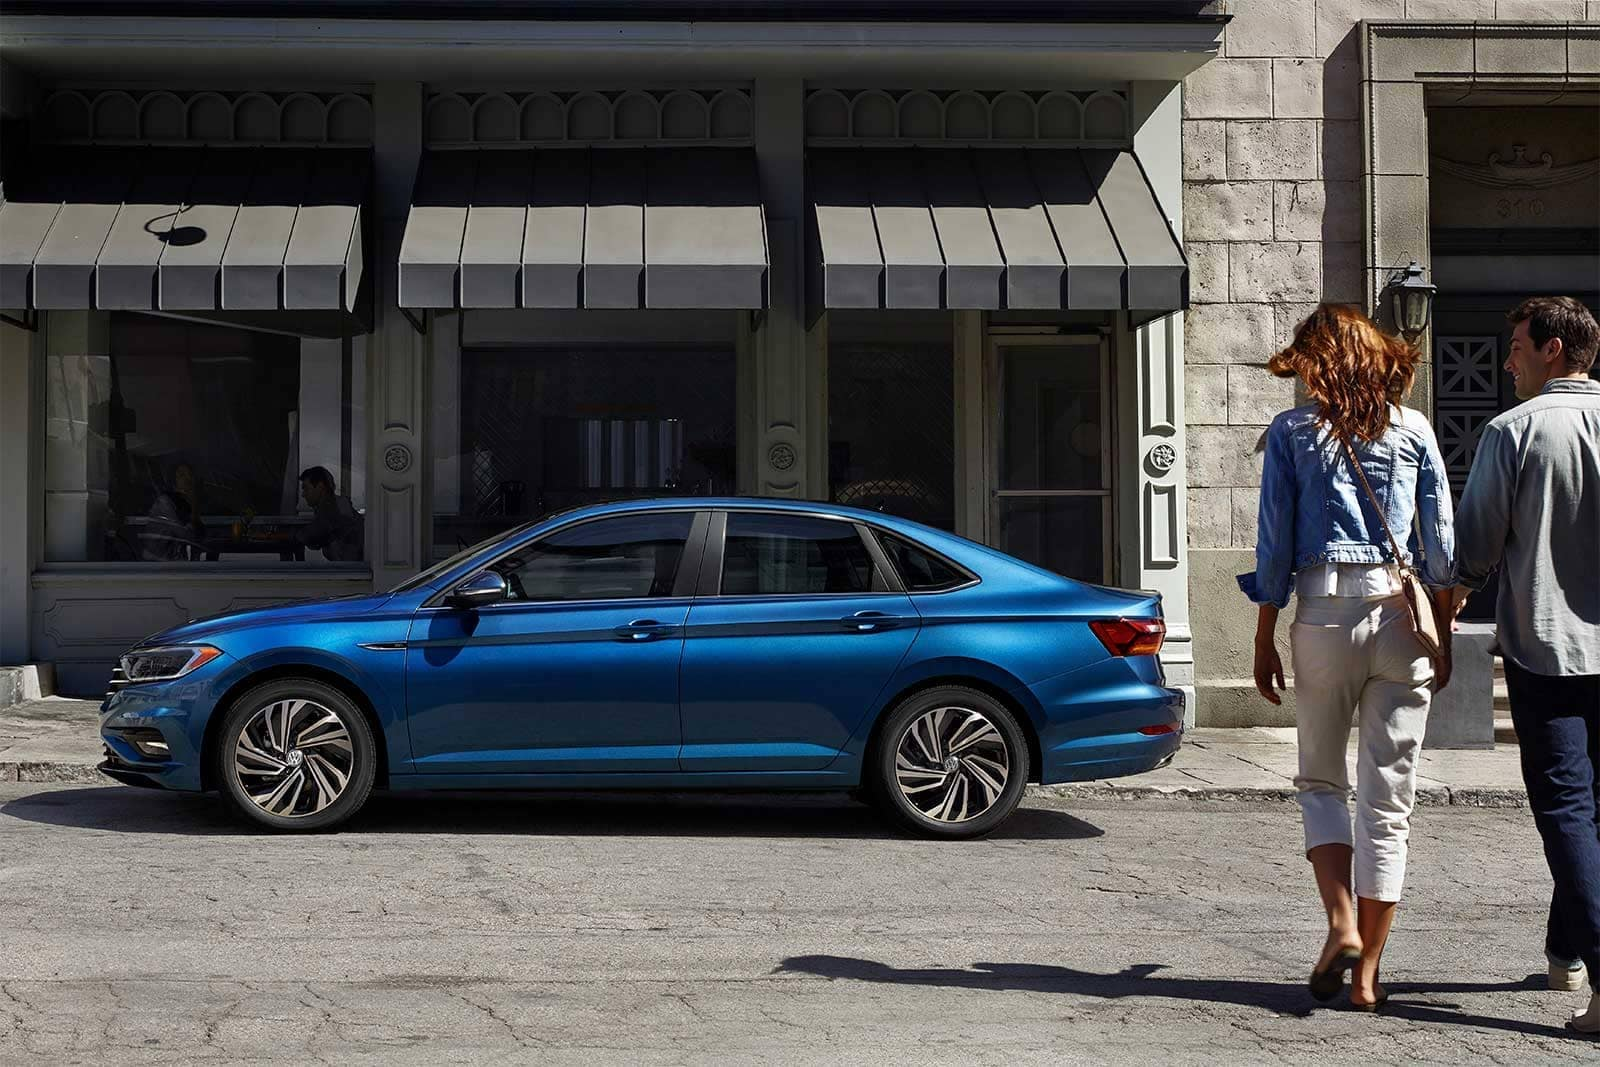 2019-Volkswagen-Jetta-SEL-Premium-in-silk-blue-metallic-side-view